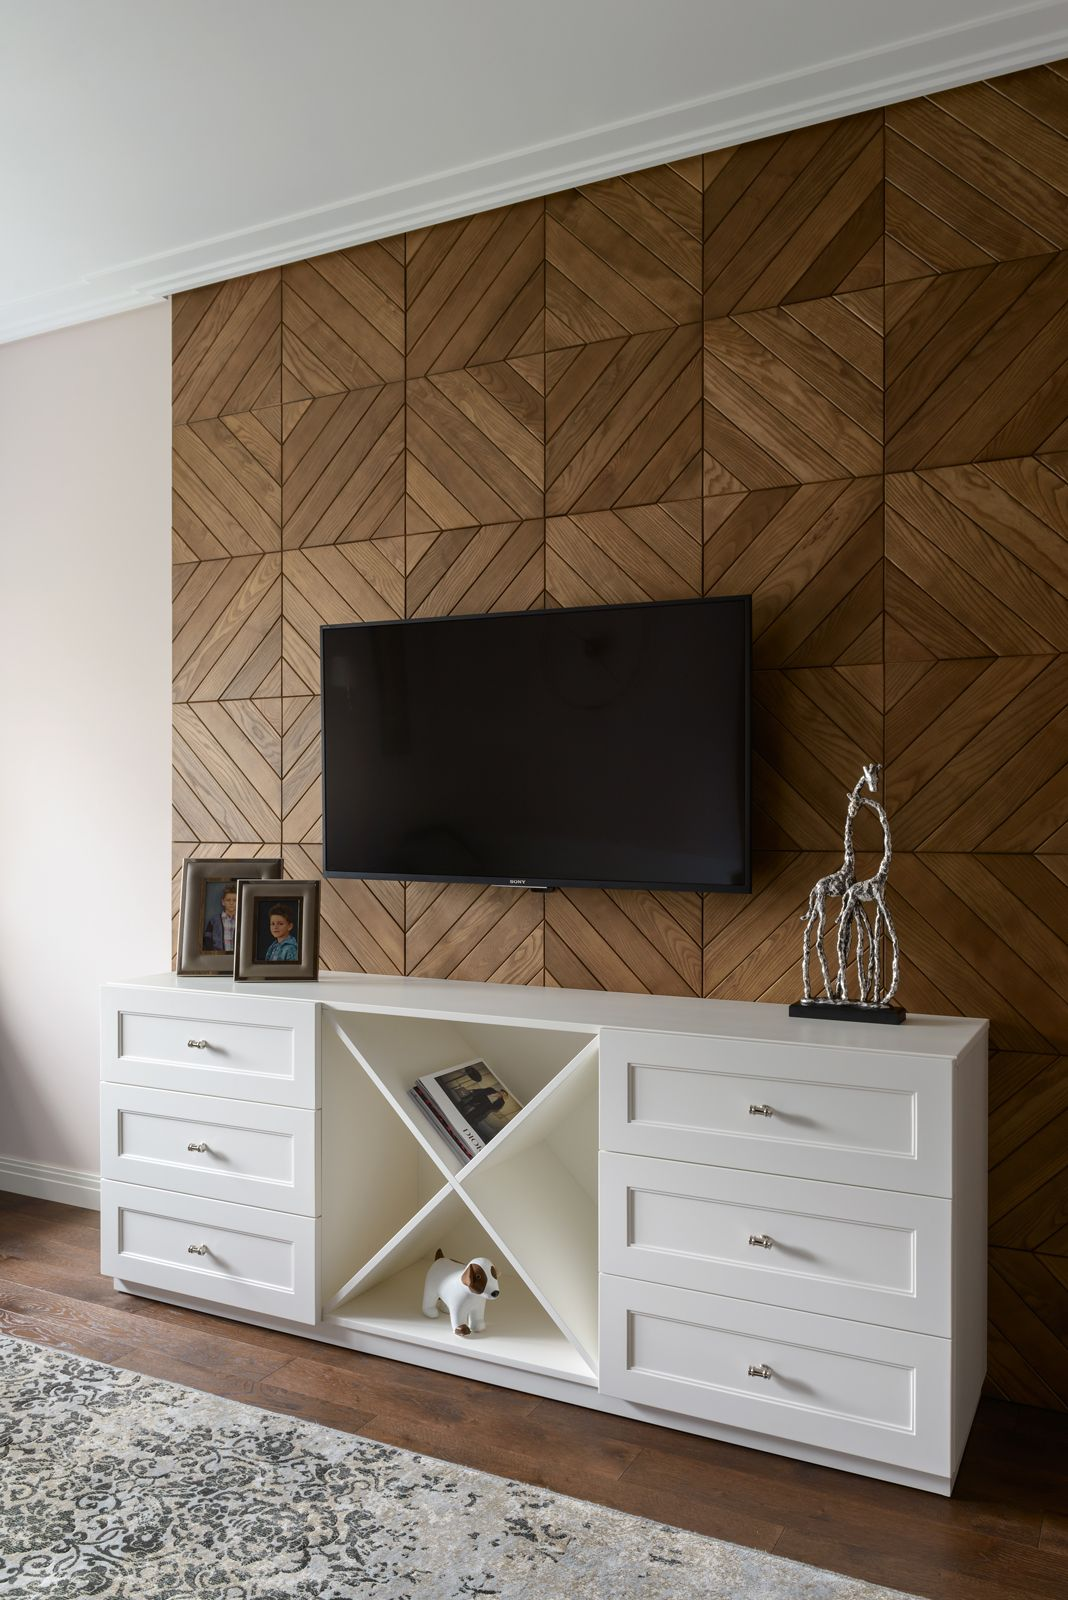 Wood Paneled Room Design: Decorating Living Room With Wooden Panels. Panelling With